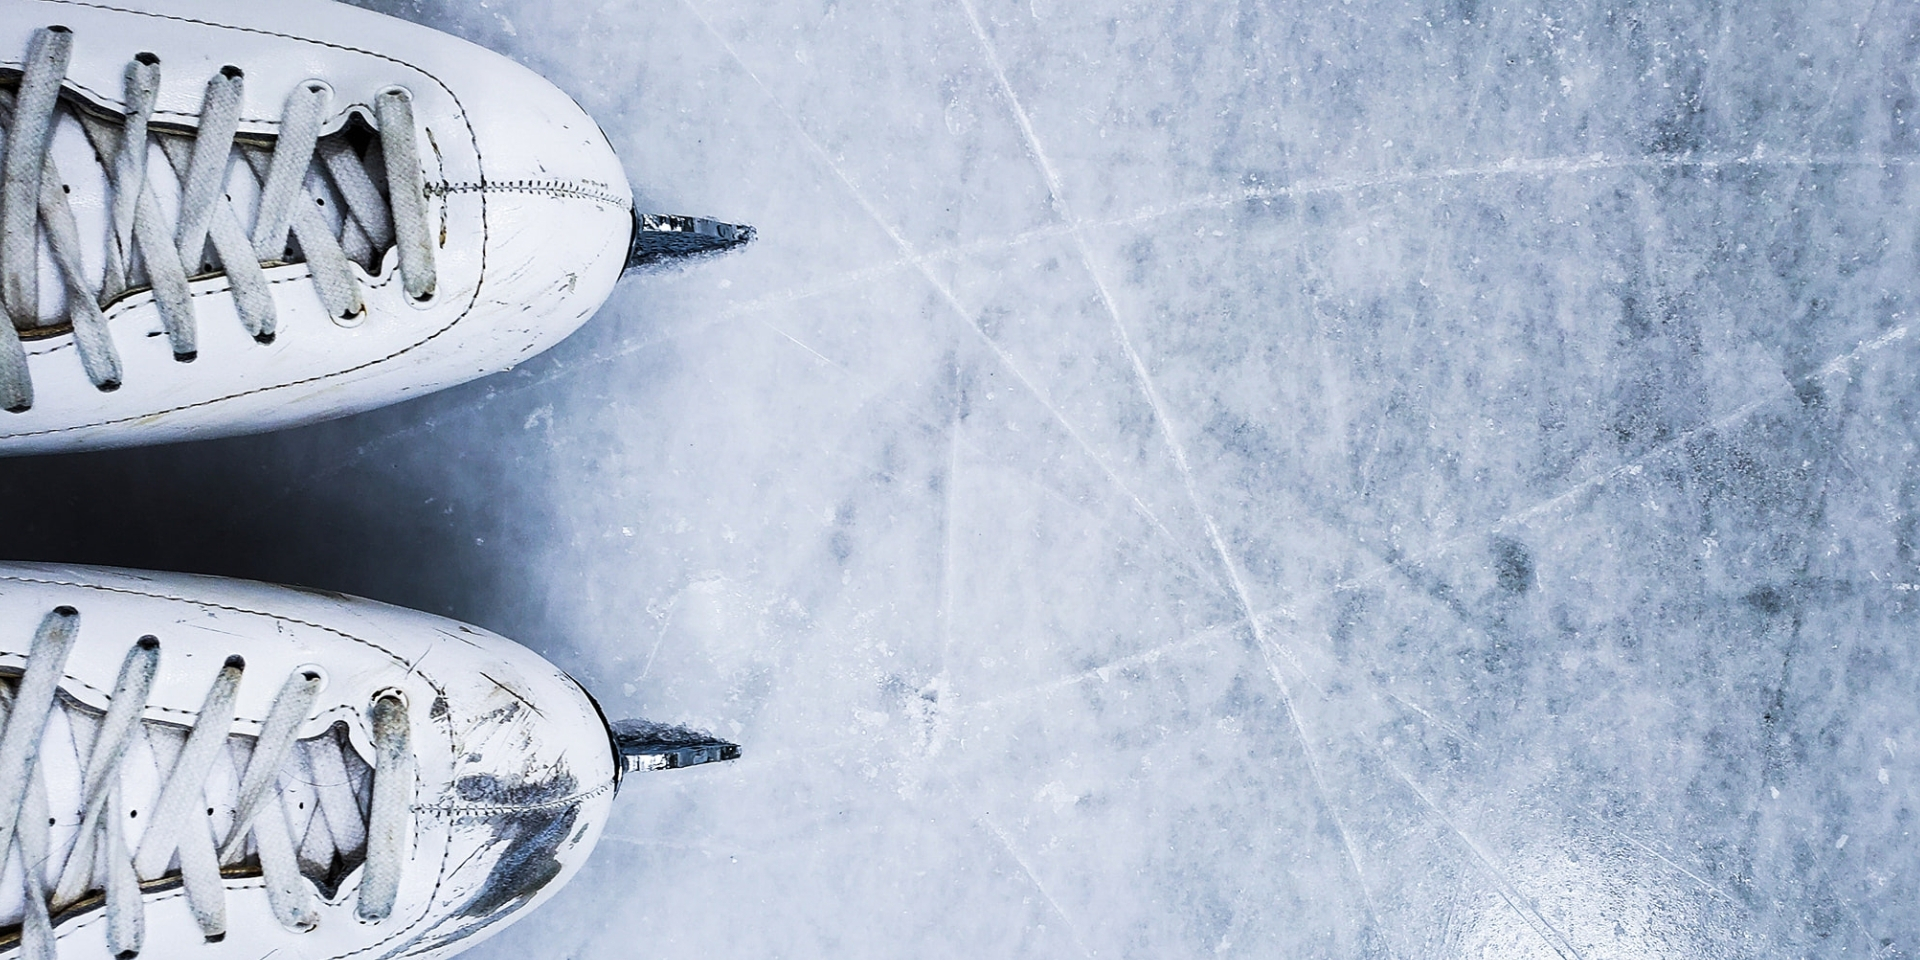 Christie Griffin photograph of skates on ice